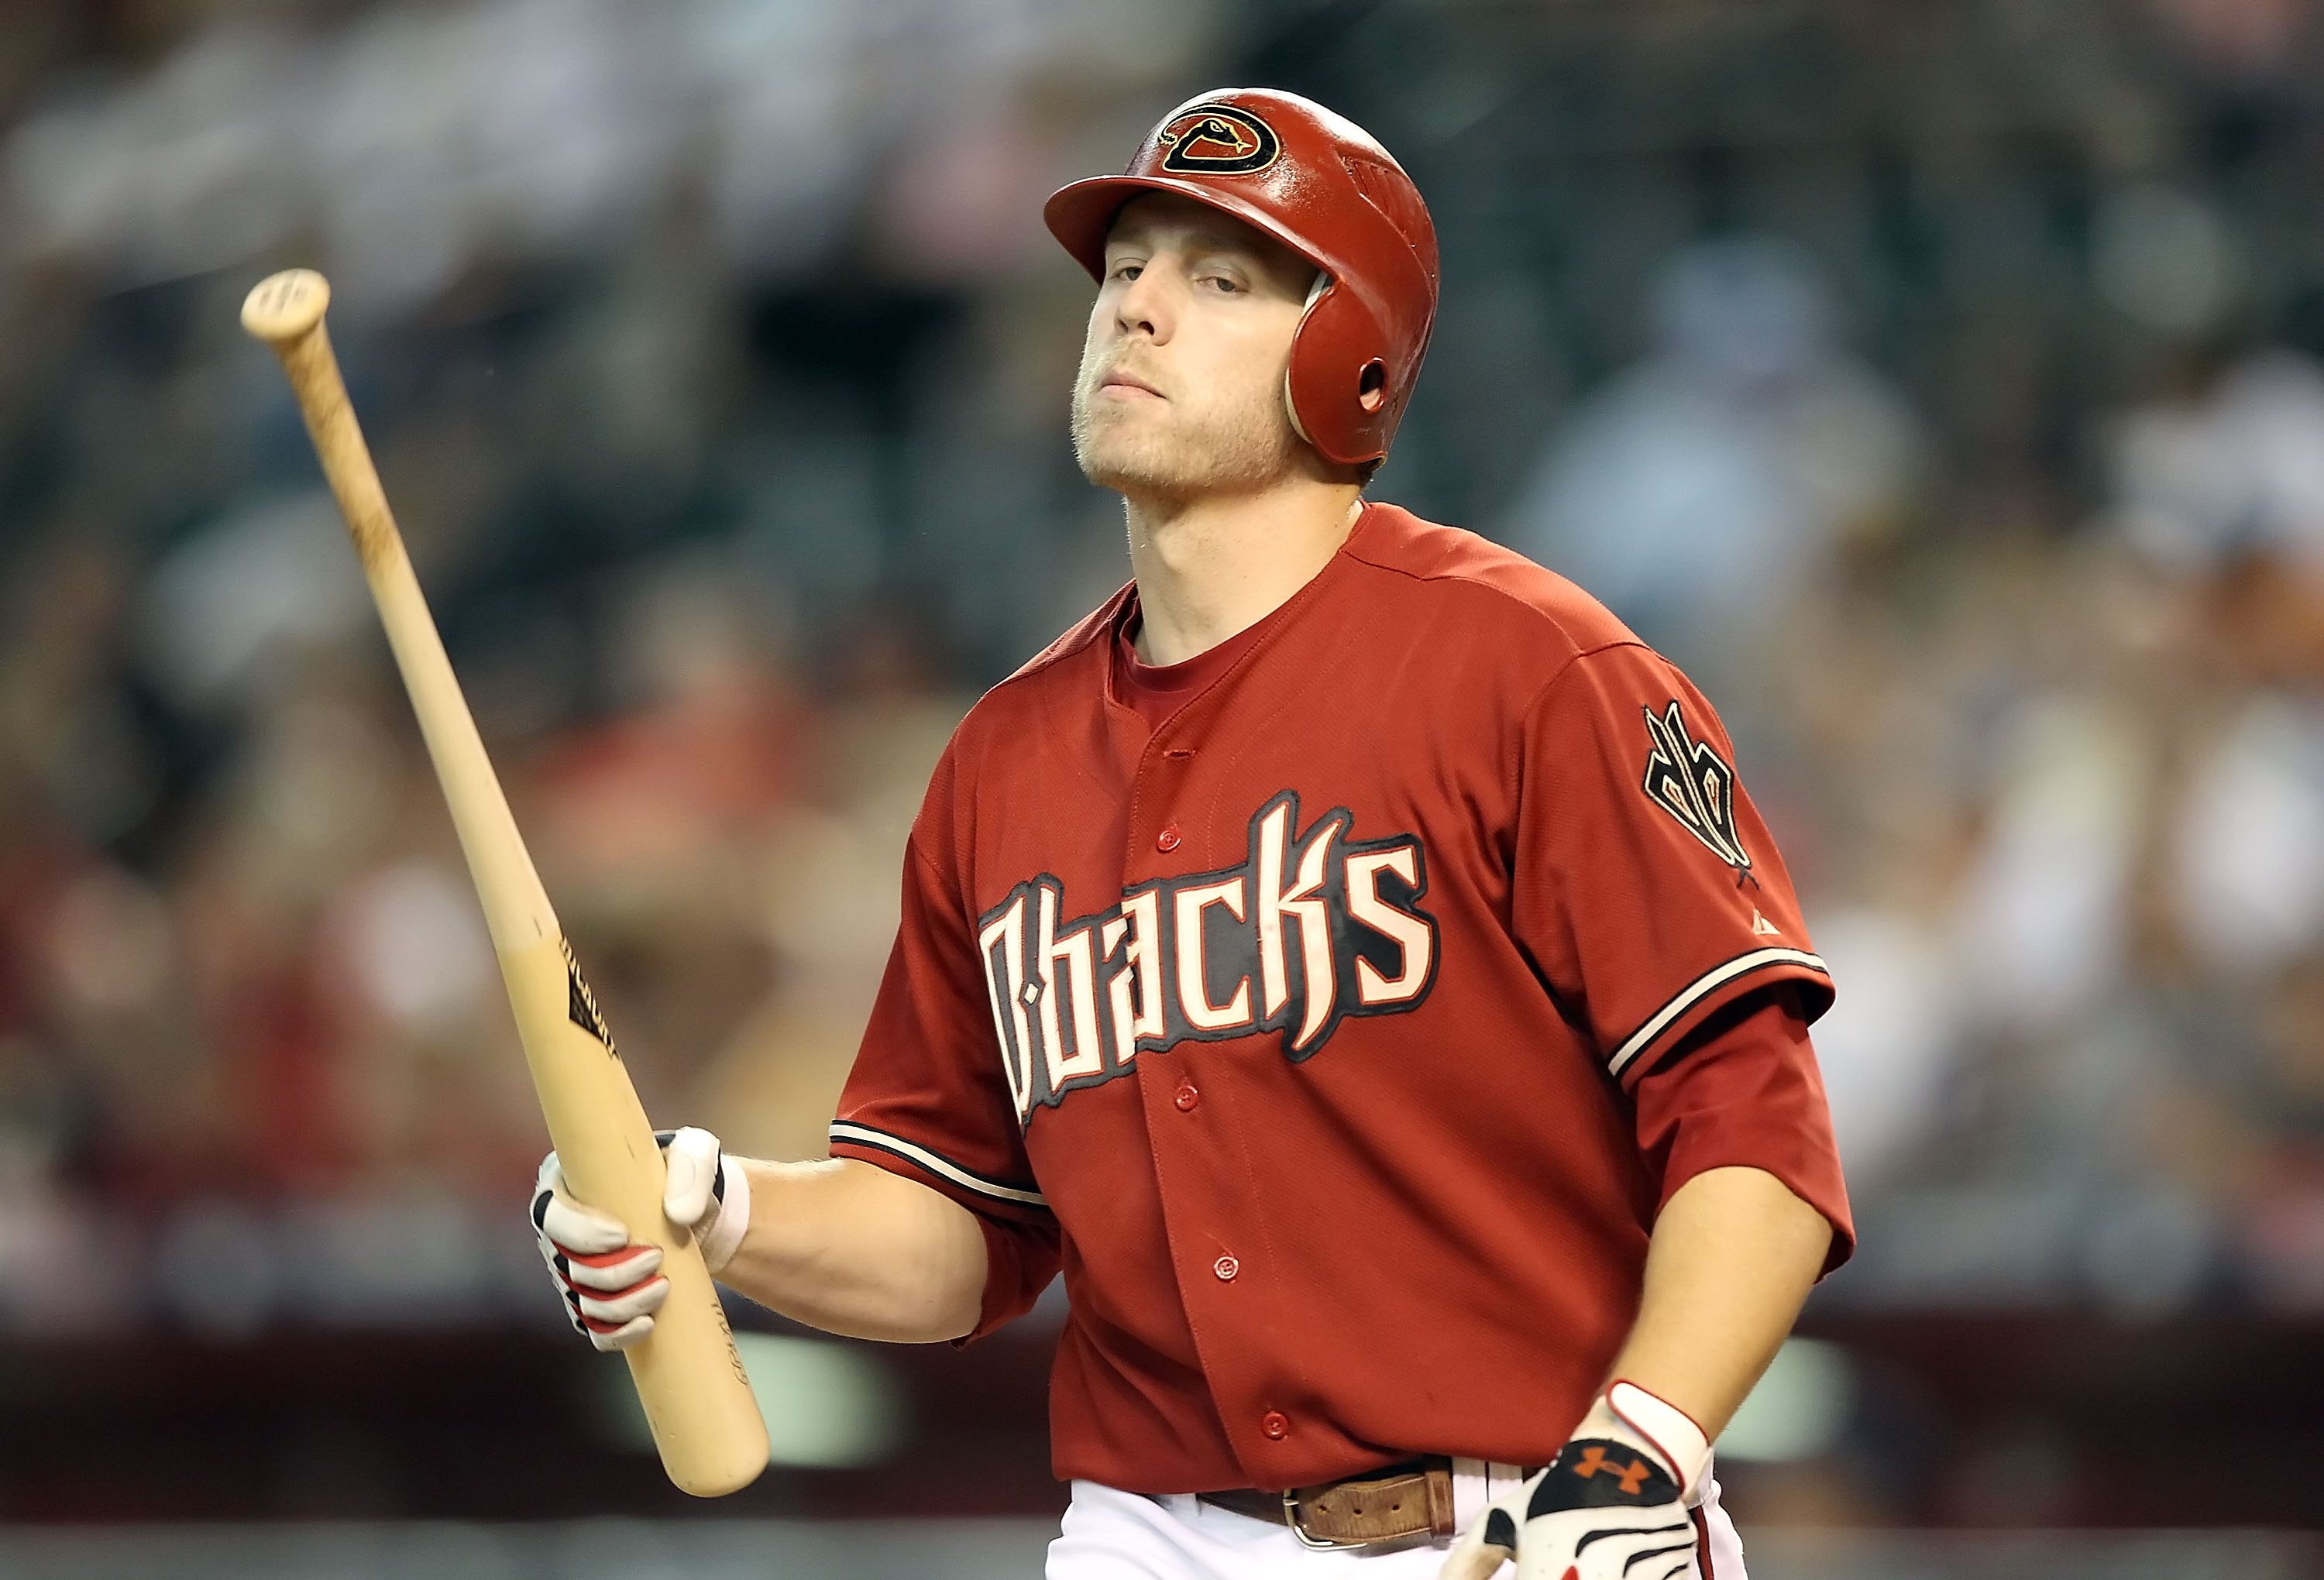 PHOENIX - JUNE 13:  Mark Reynolds #27 of the Arizona Diamondbacks reacts after striking out against the St. Louis Cardinals during the Major League Baseball game at Chase Field on June 13, 2010 in Phoenix, Arizona.  The Diamondbacks defeated the Cardinals